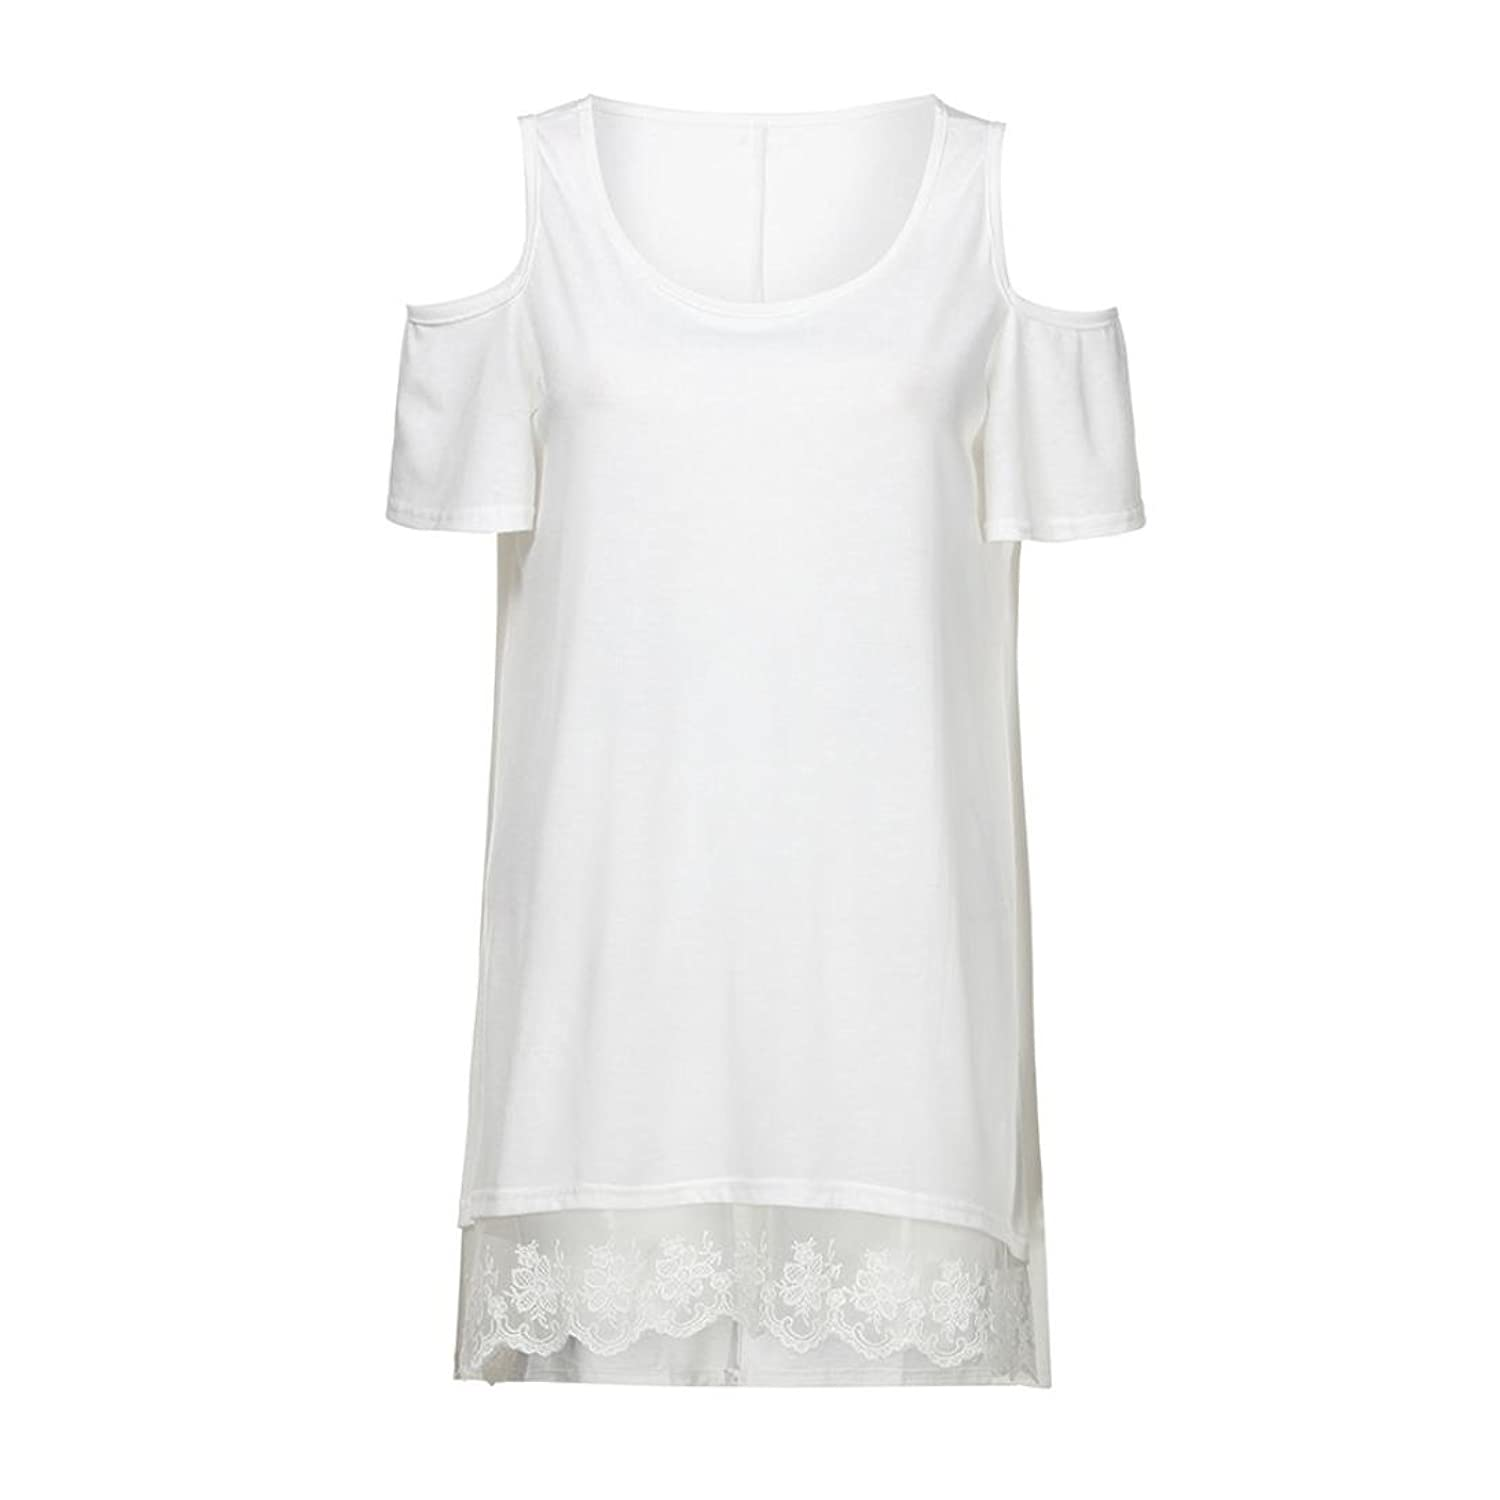 ccb8fea641e49 Top 10 wholesale Off The Shoulder Tee Shirt Womens - Chinabrands.com